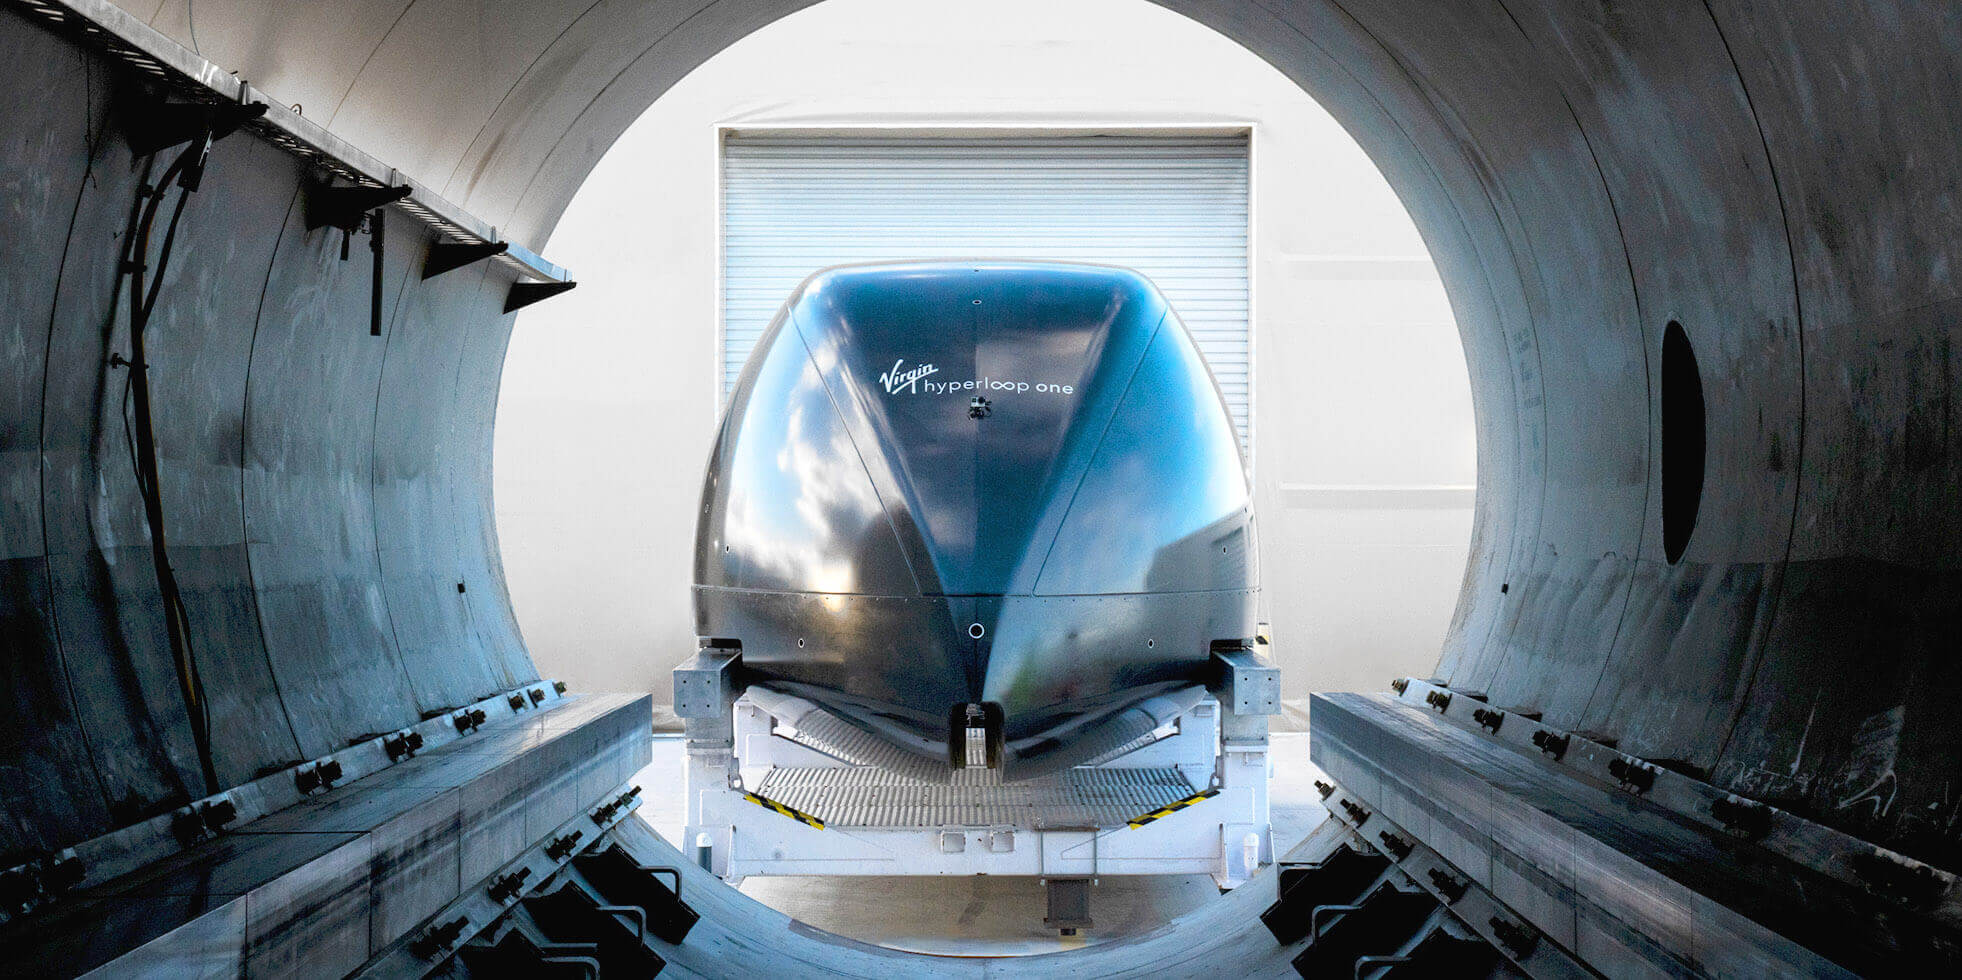 When we receive the transport of the future Hyperloop and how fast they can move?